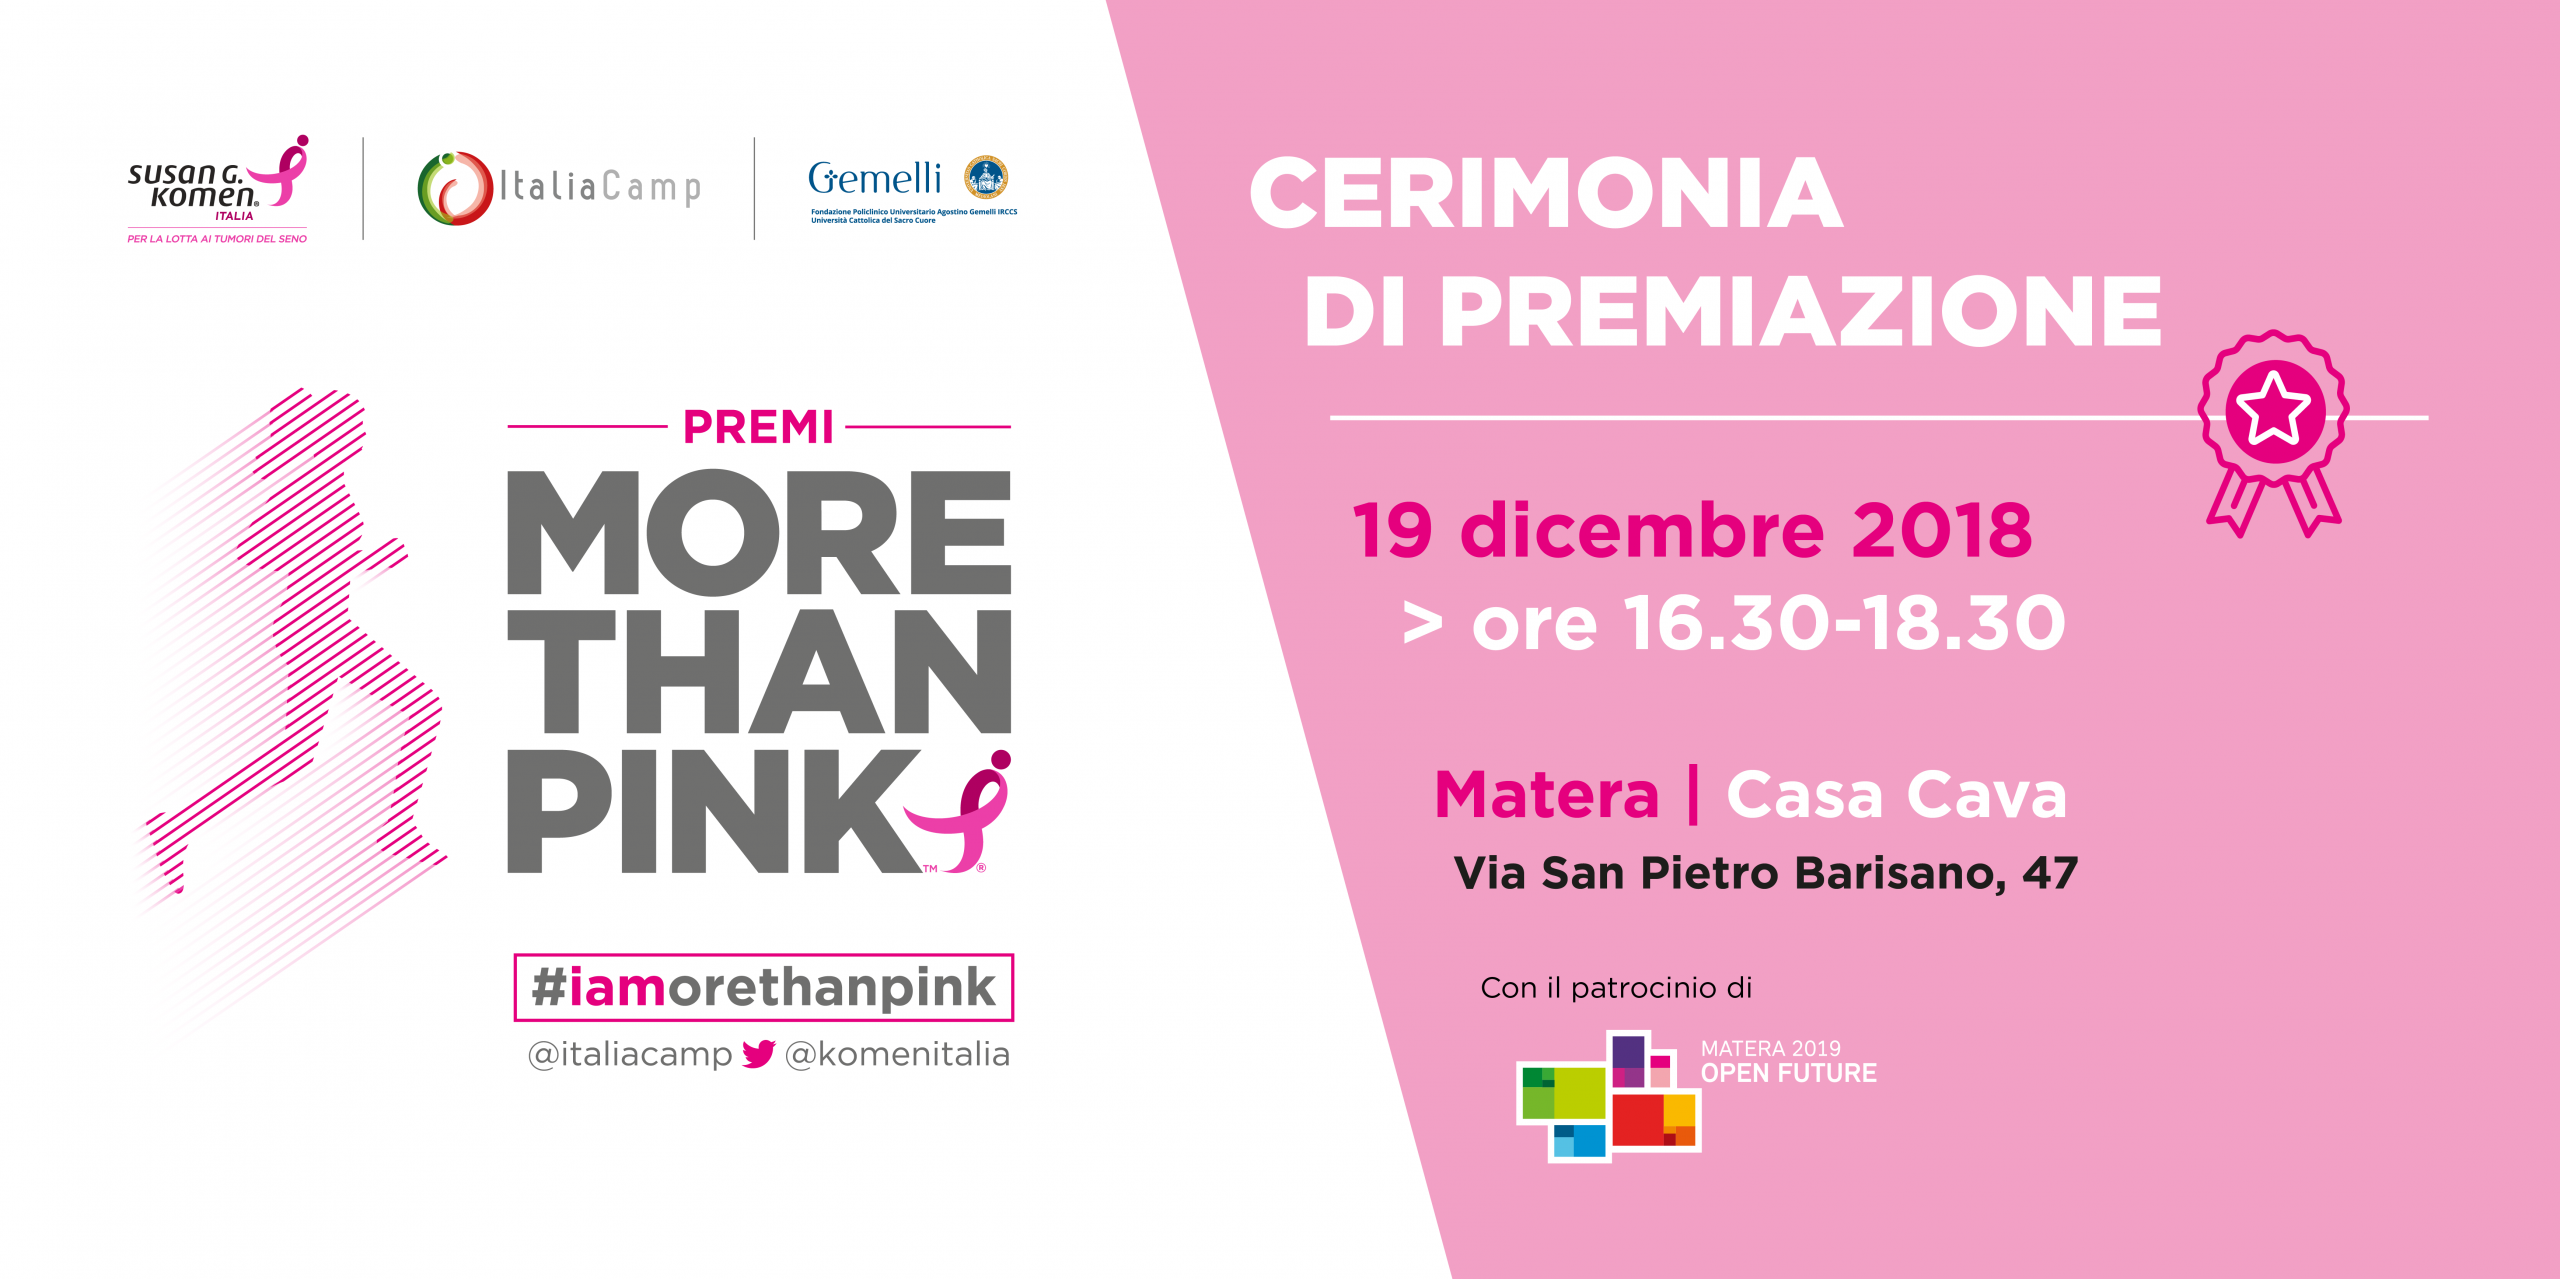 More Than Pink 2018 premiazione